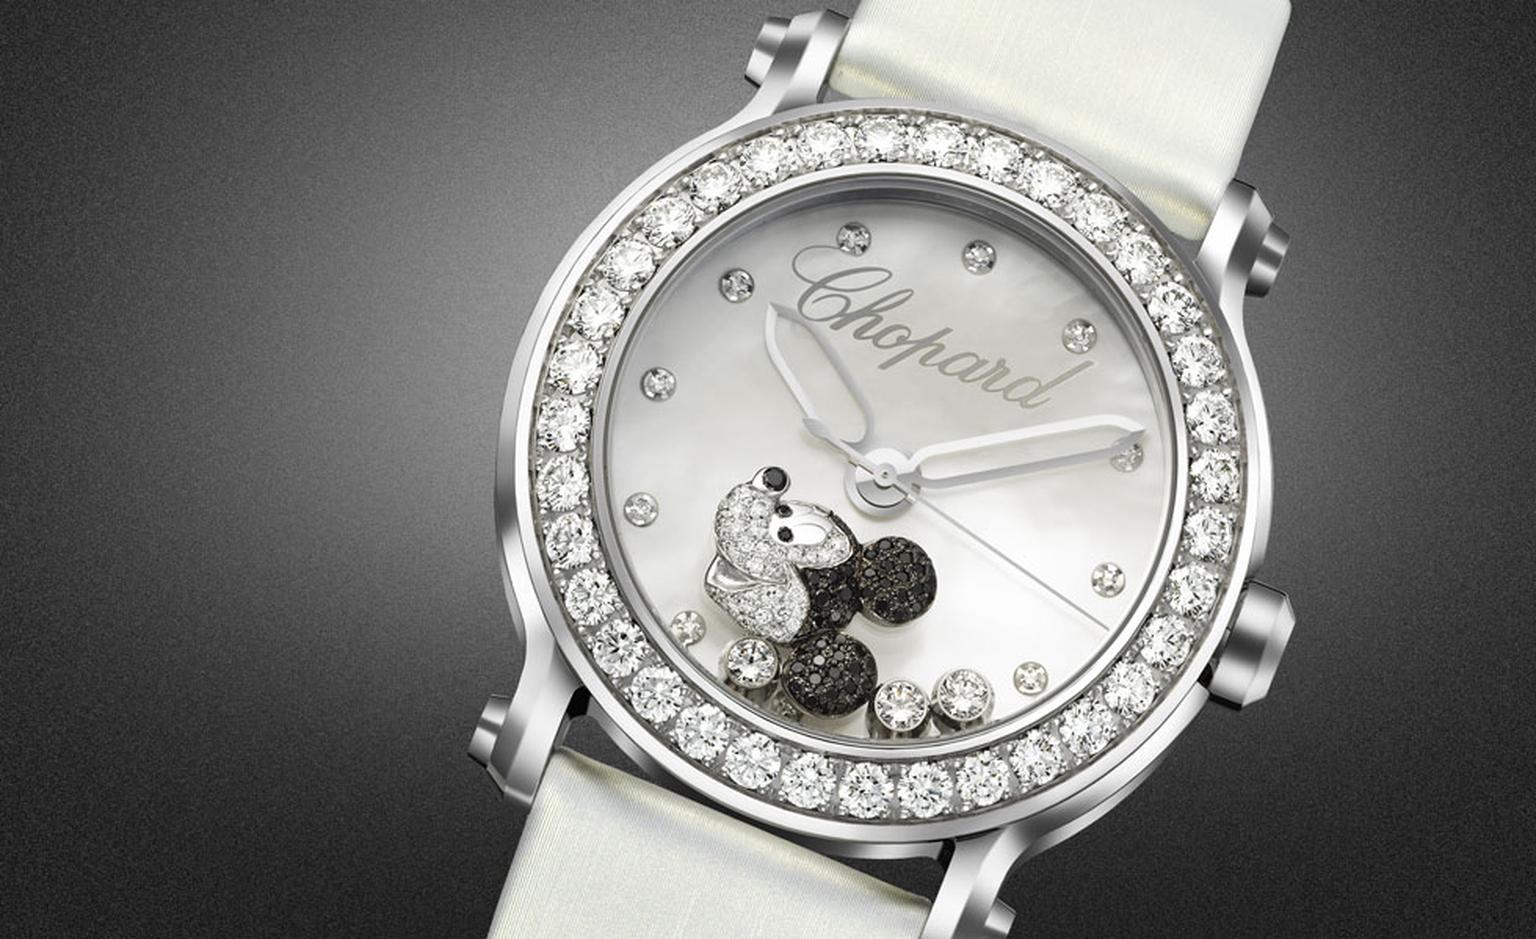 Chopard Happy Mickey watch in stainless steel with diamond set bezel, mother of pearl dial and a mobile Mickey set with black and white diamonds.